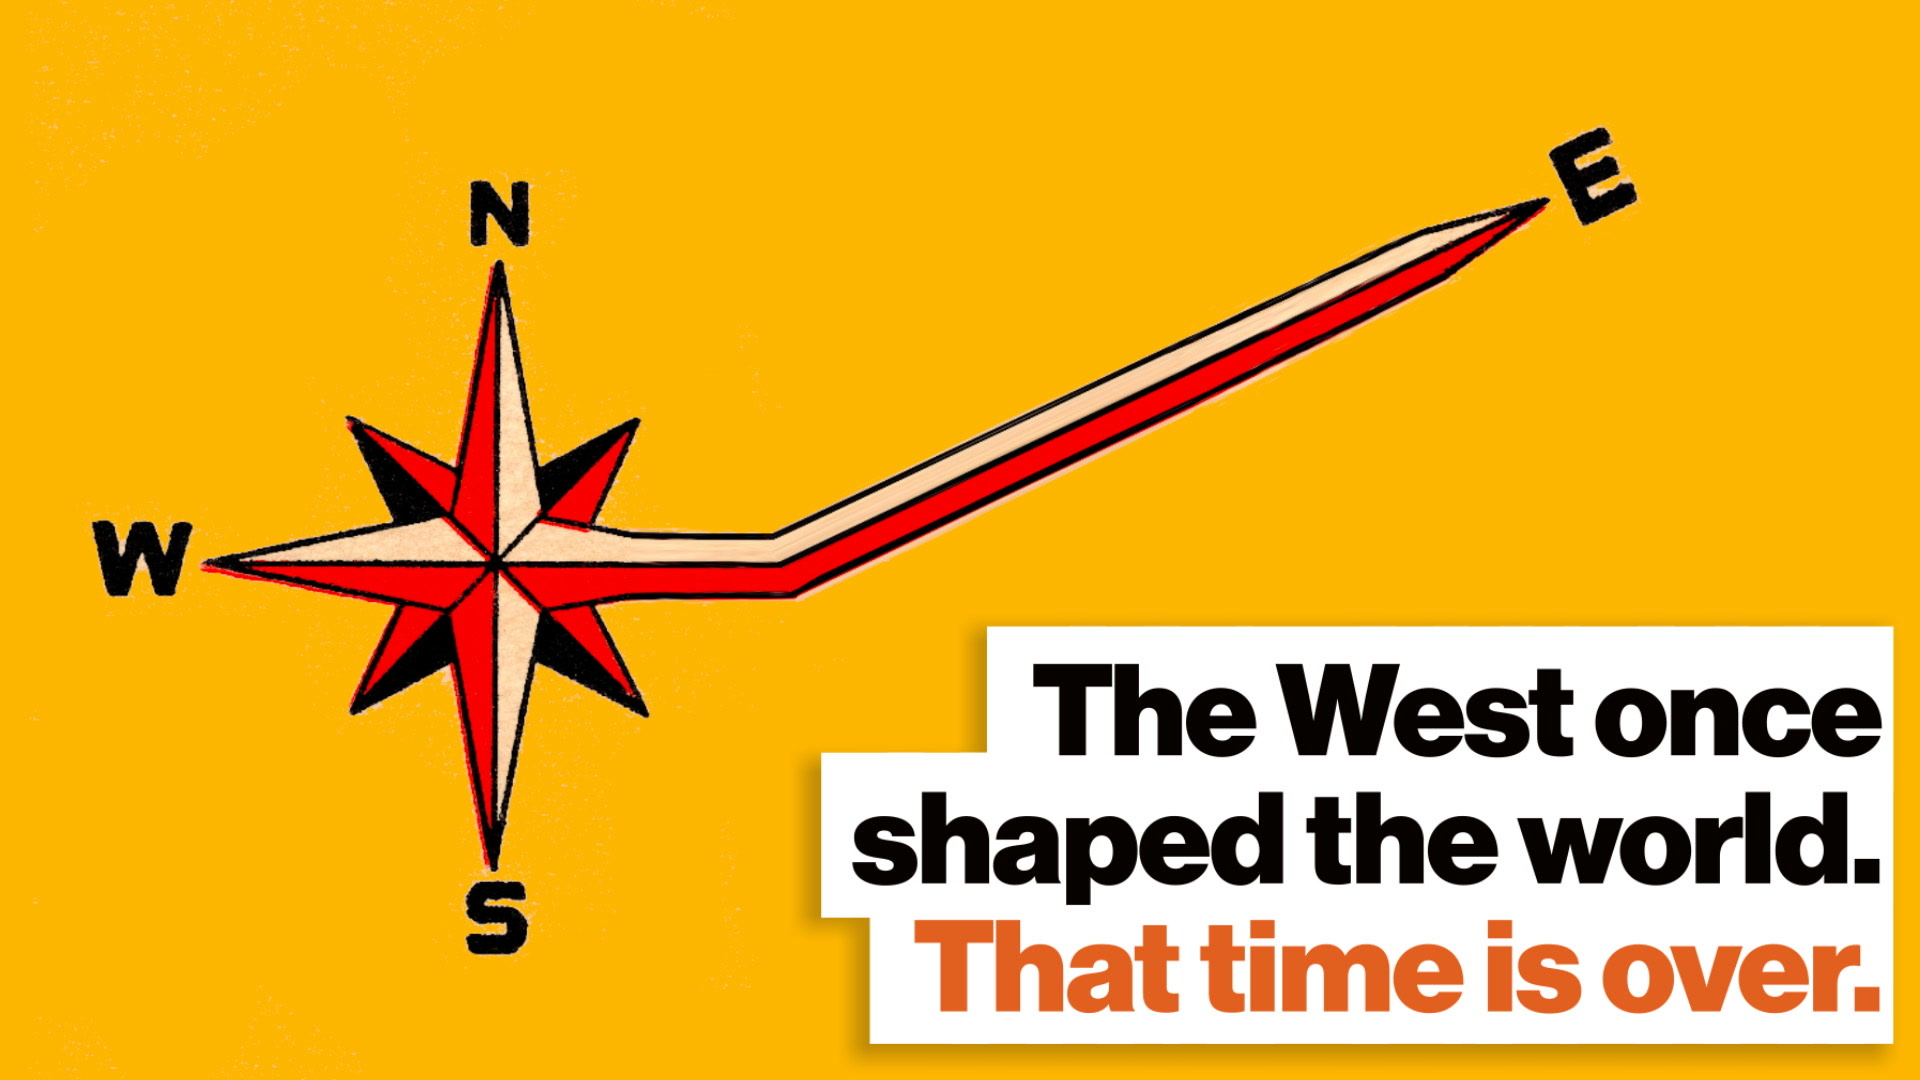 For a long time, the West shaped the world. That time is over.